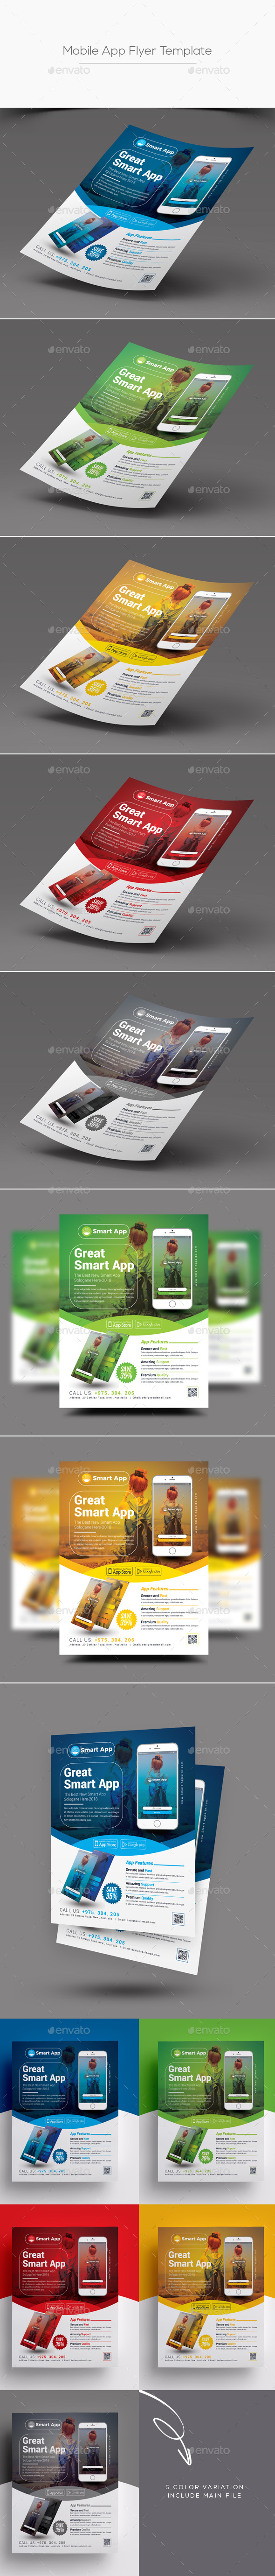 GraphicRiver Mobile App Flyer Template 20692404